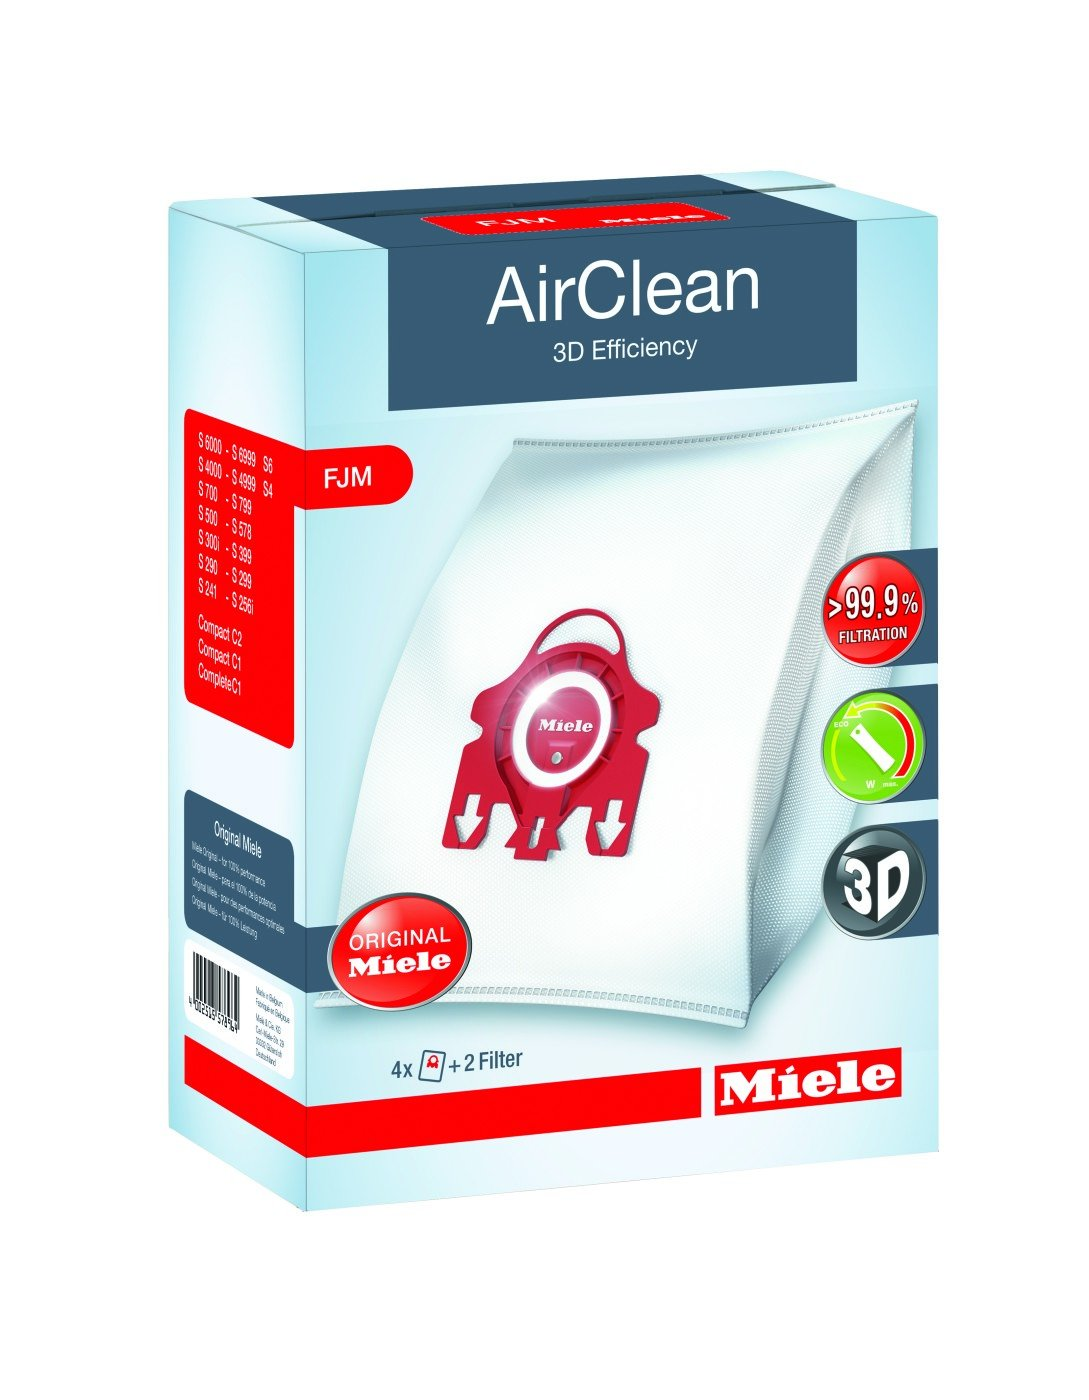 Miele AirClean 3D Efficiency Dust Bag, Type FJM, 4 Bags & 2 Filters by Miele